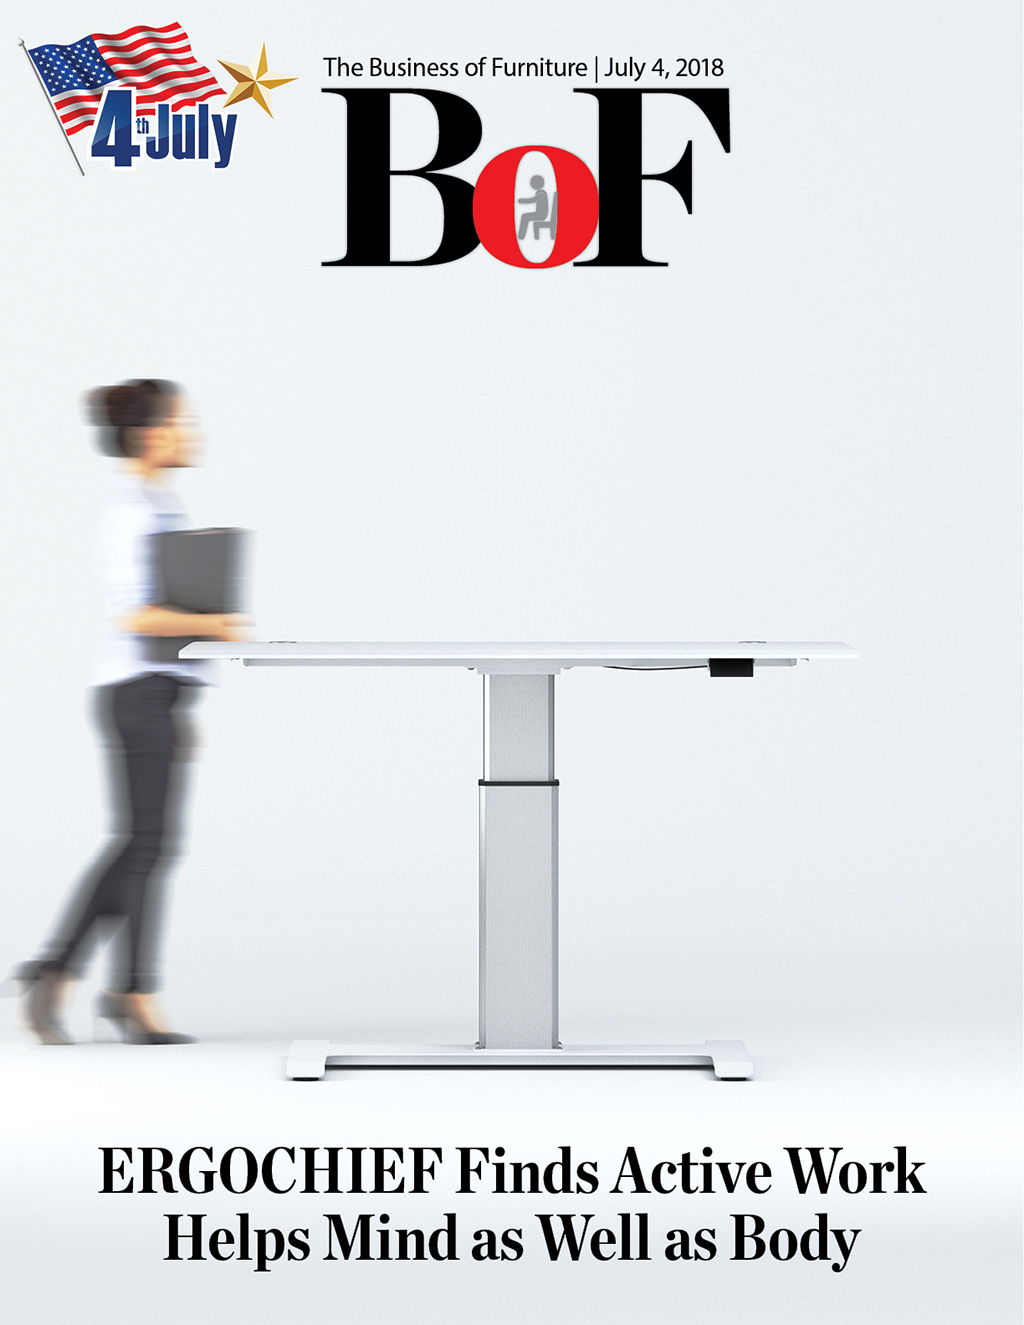 Bellow Press - Previous Editions of Workplaces Magazine and The